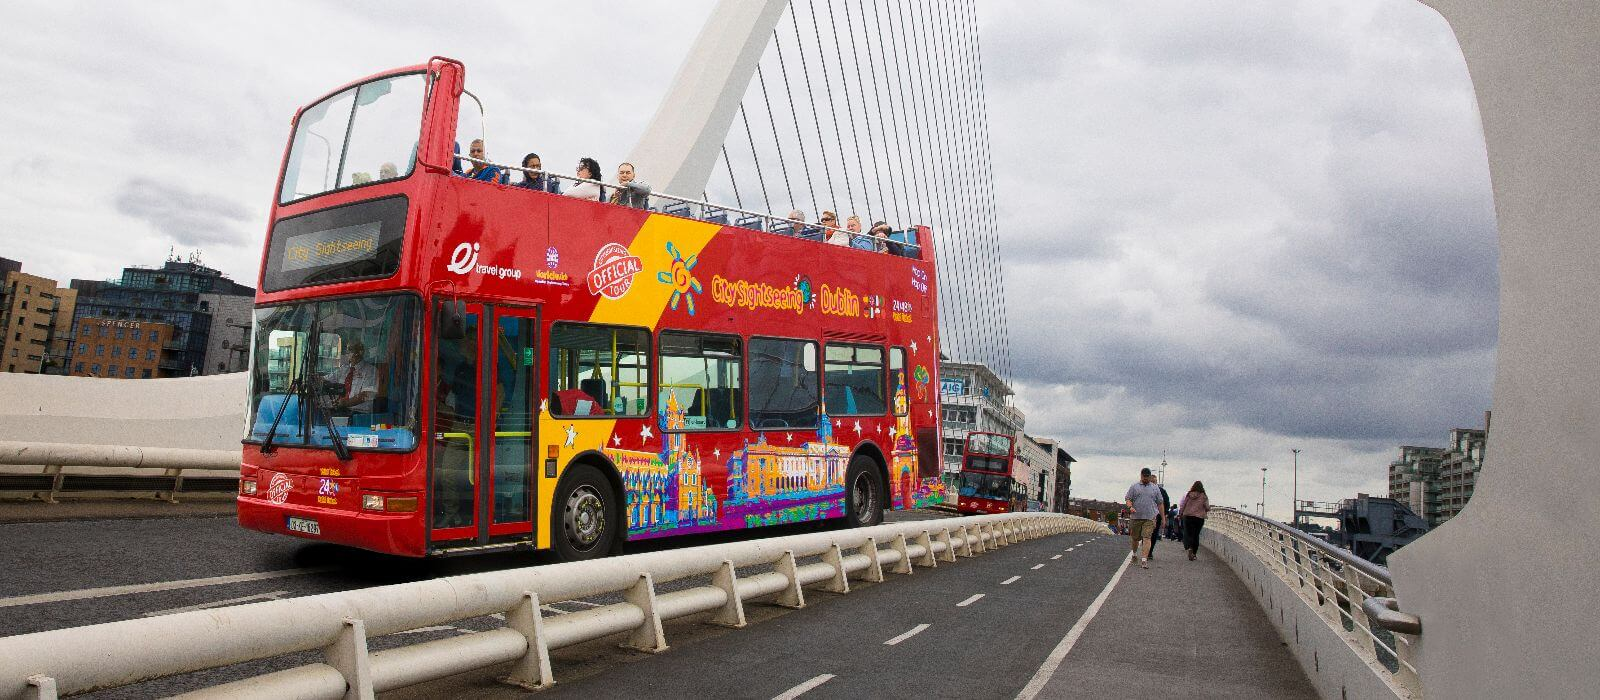 City Sightseeing Dublin Hop-On, Hop-Off Bus Tour